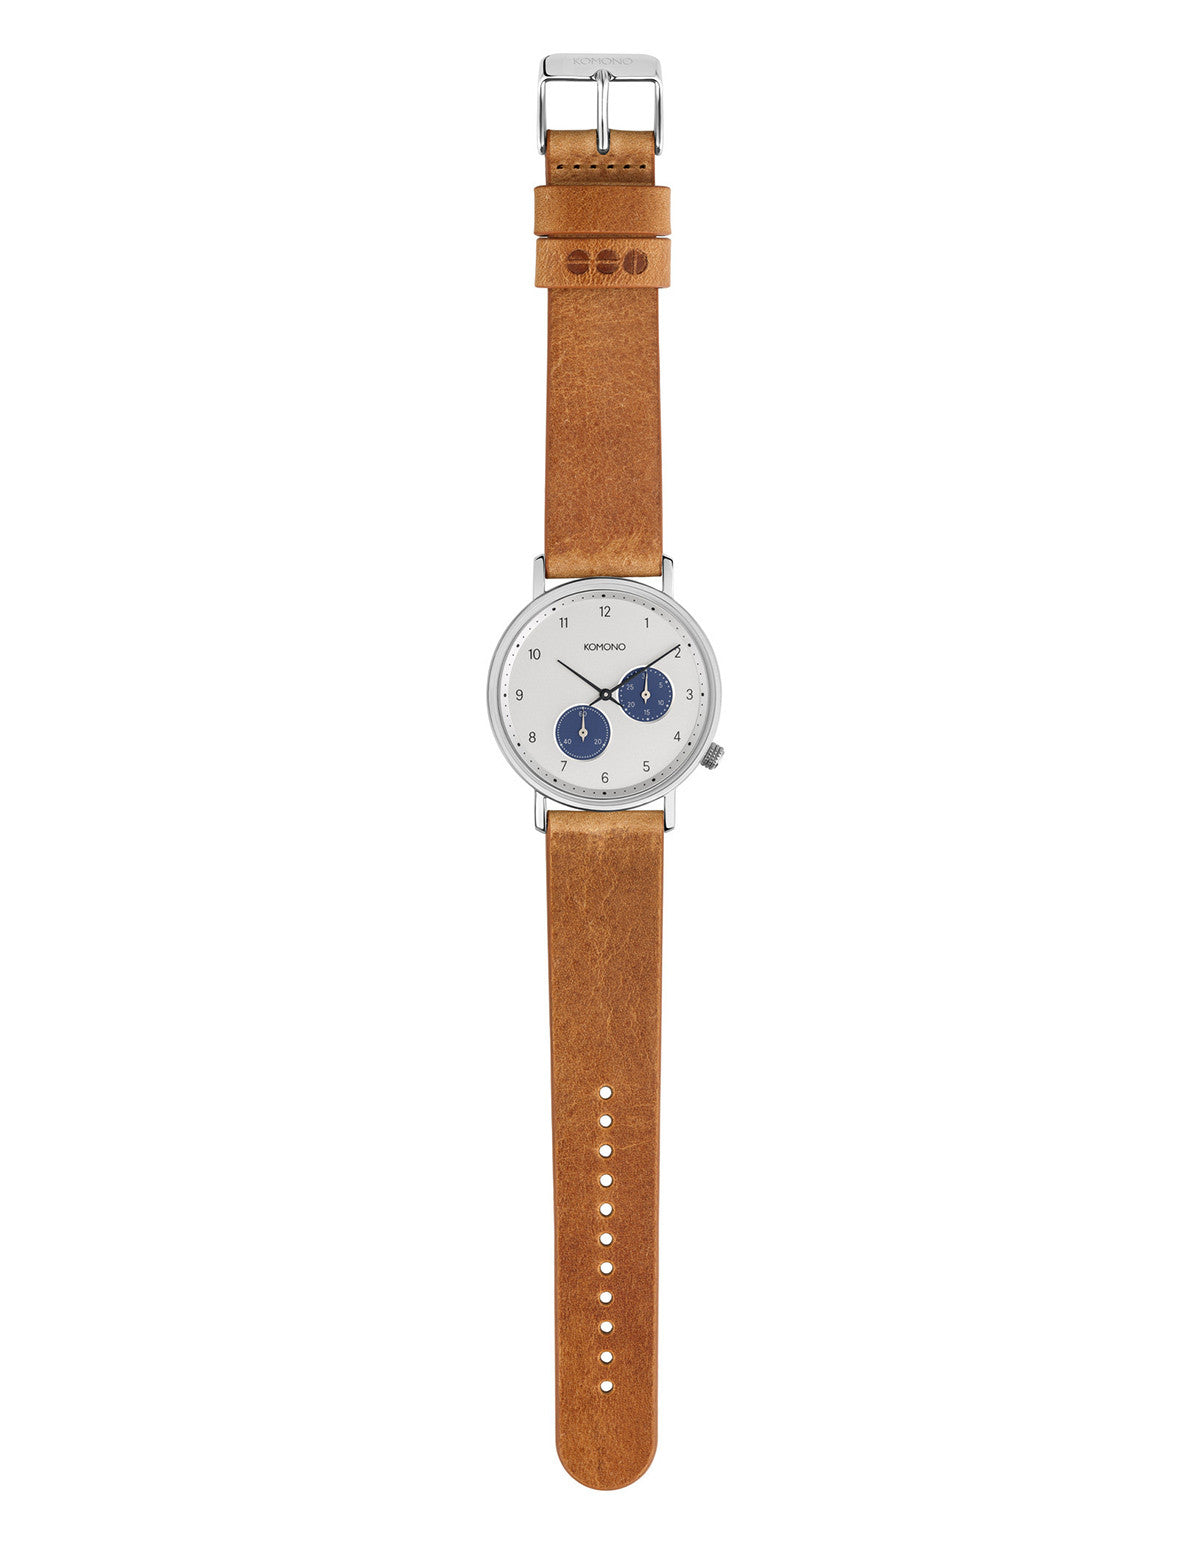 Komono Walther Crafted Watch Camel - Still Life - 3